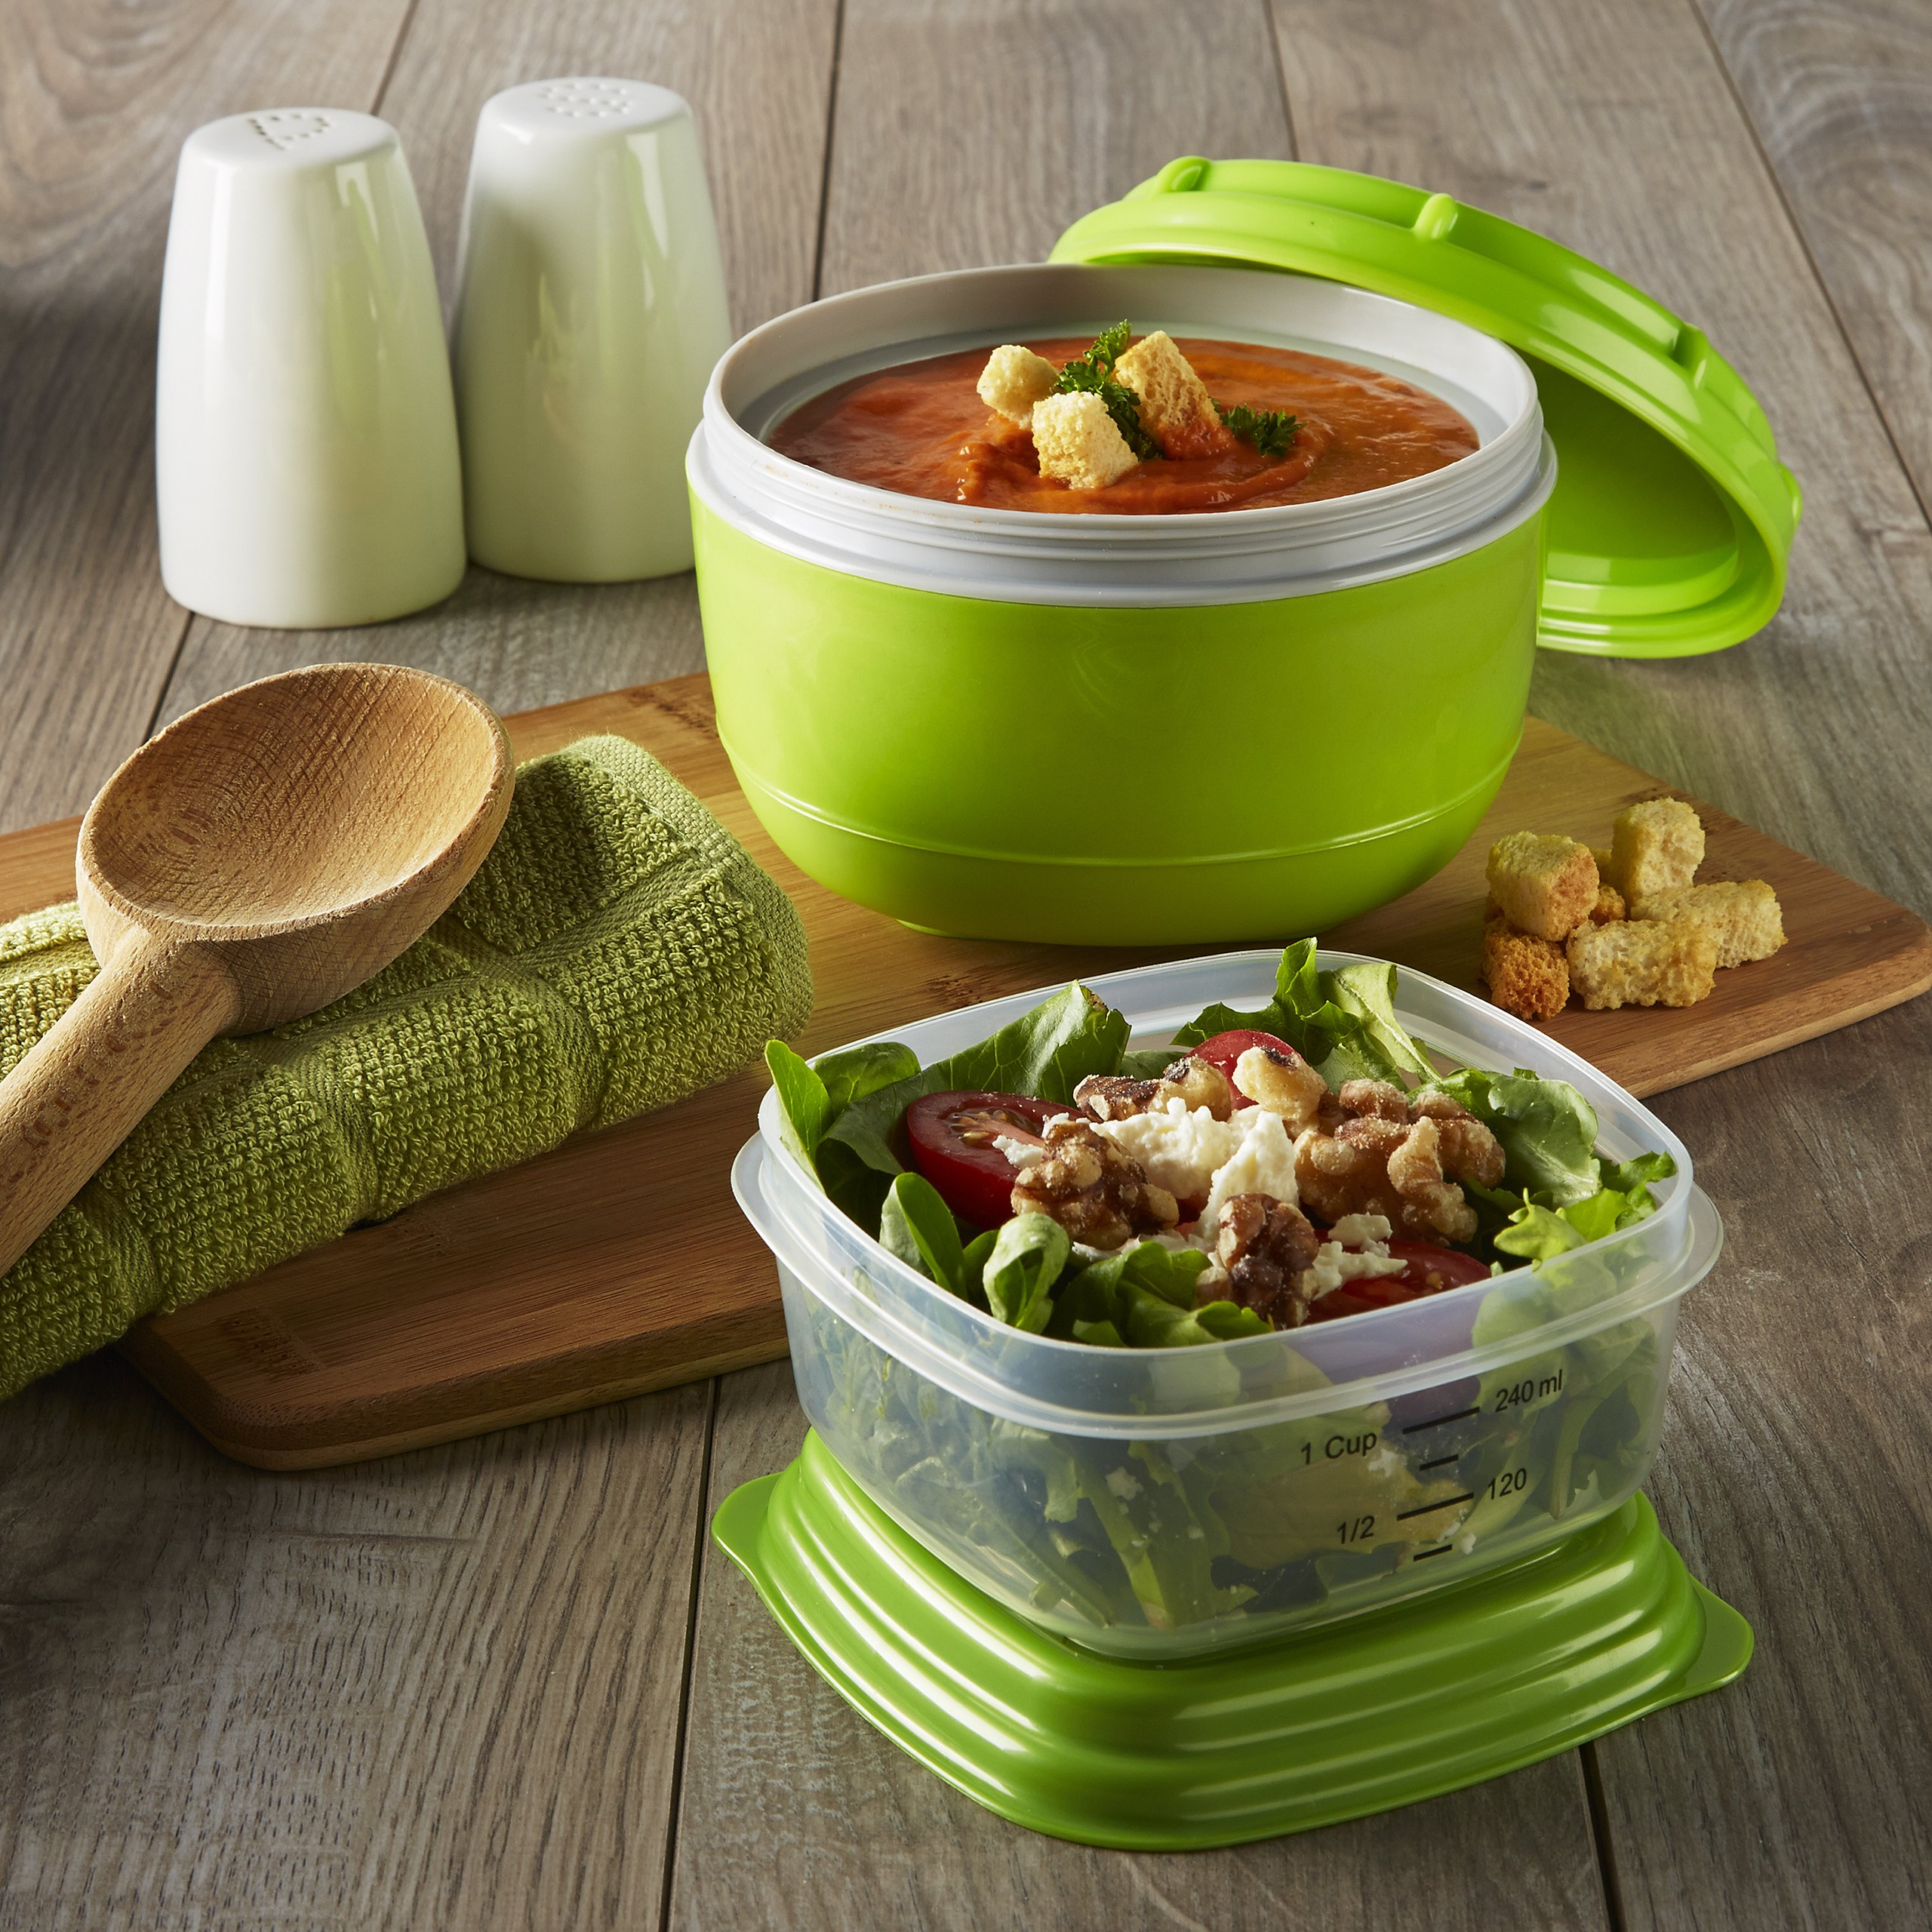 fit fresh fresh selects soup side lunch containers set of 2 ebay. Black Bedroom Furniture Sets. Home Design Ideas